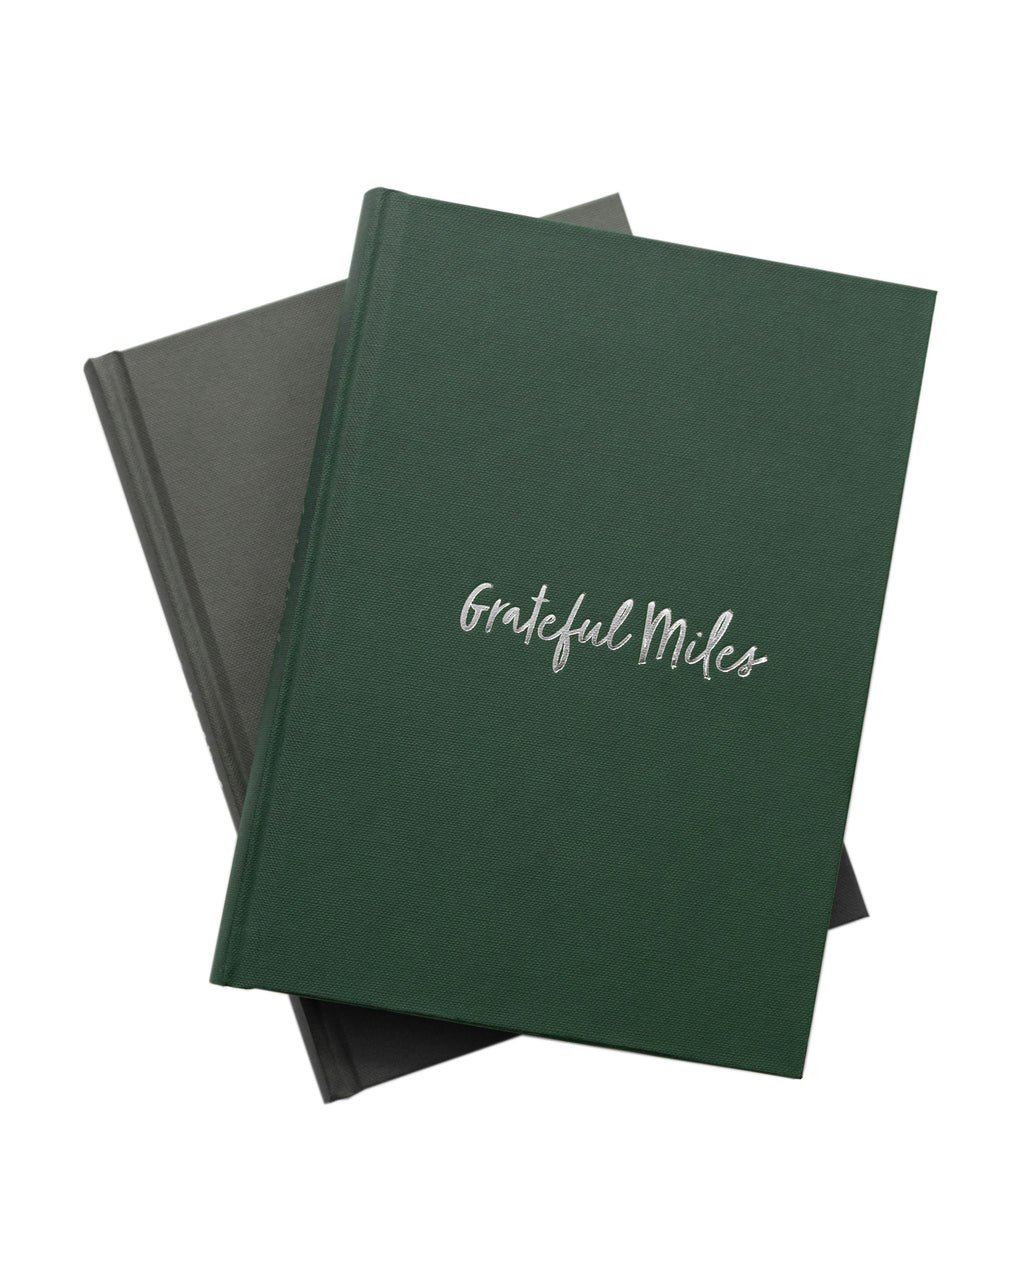 Grateful Miles -Running Gratitude Journal - HillBilly Endurance